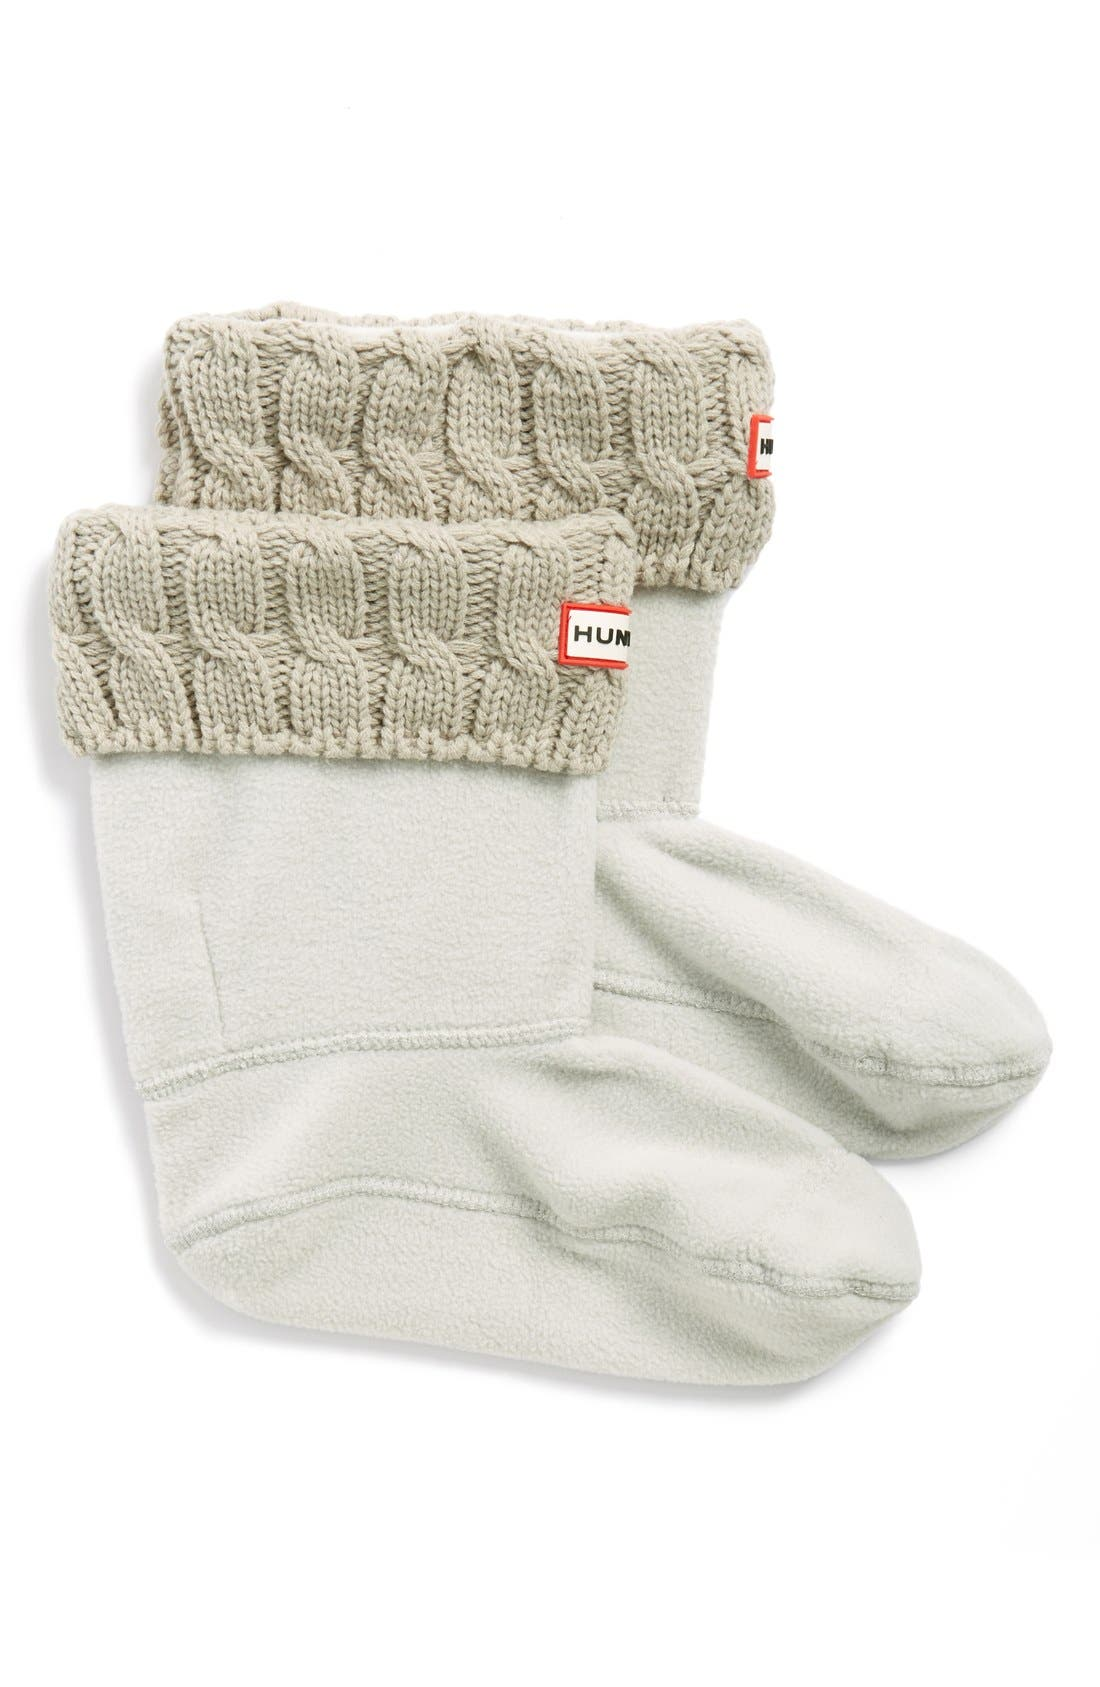 Alternate Image 1 Selected - Hunter Original Short Cable Knit Cuff Welly Boot Socks